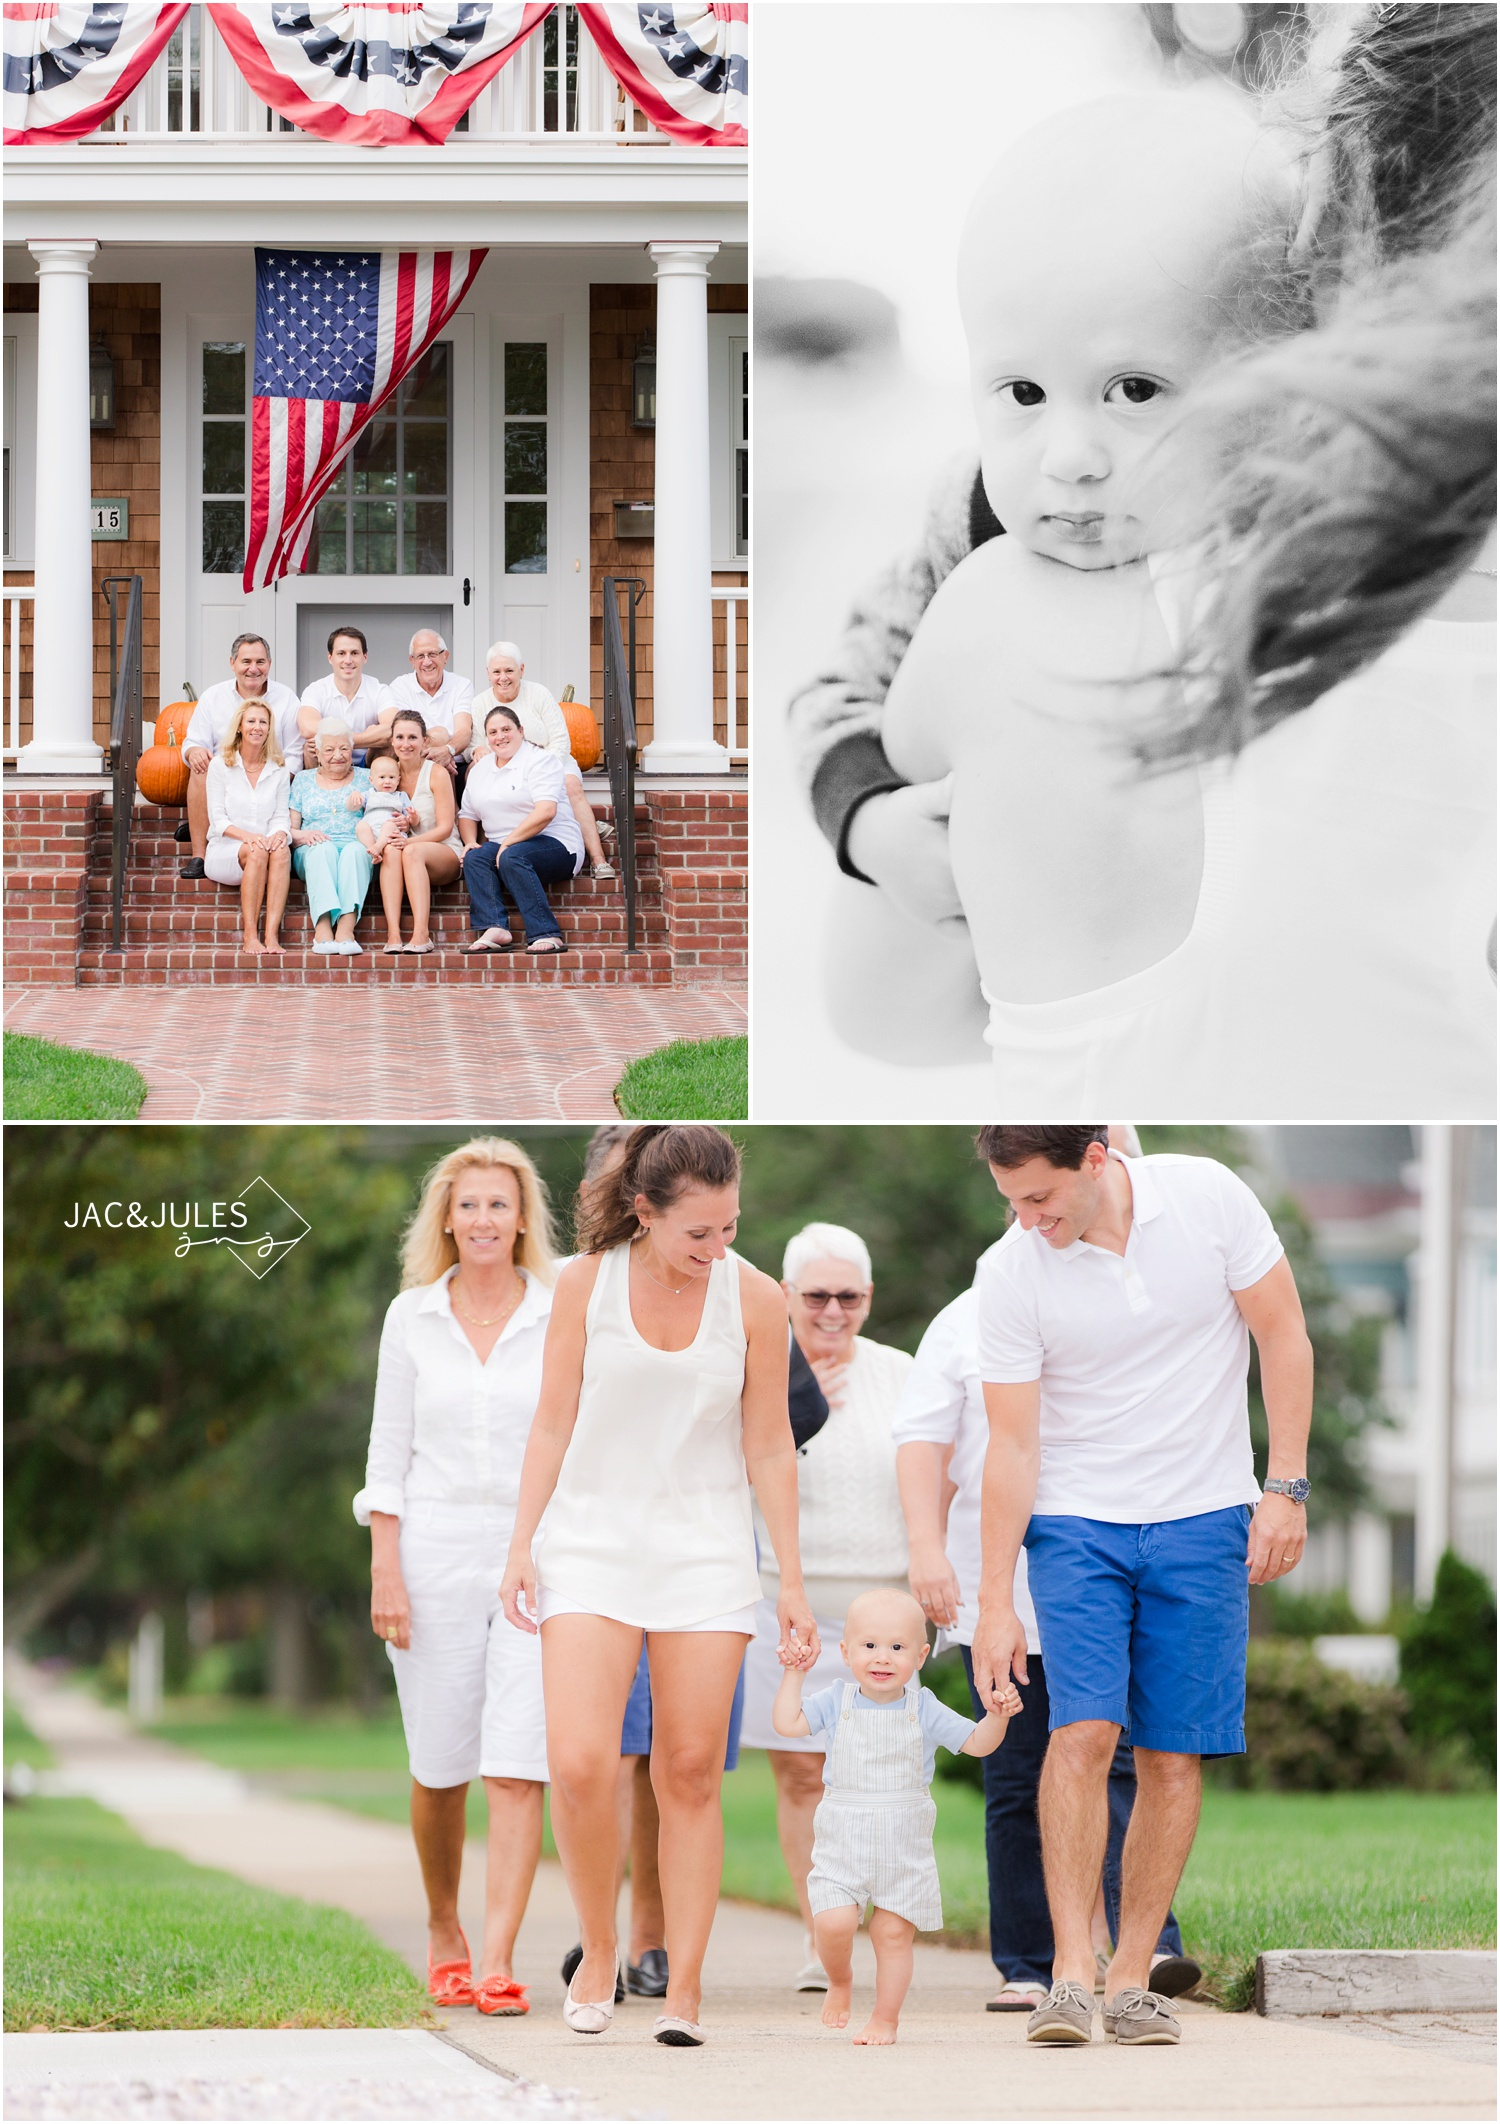 Patriotic family photo on the front porch in Sea Girt, NJ.